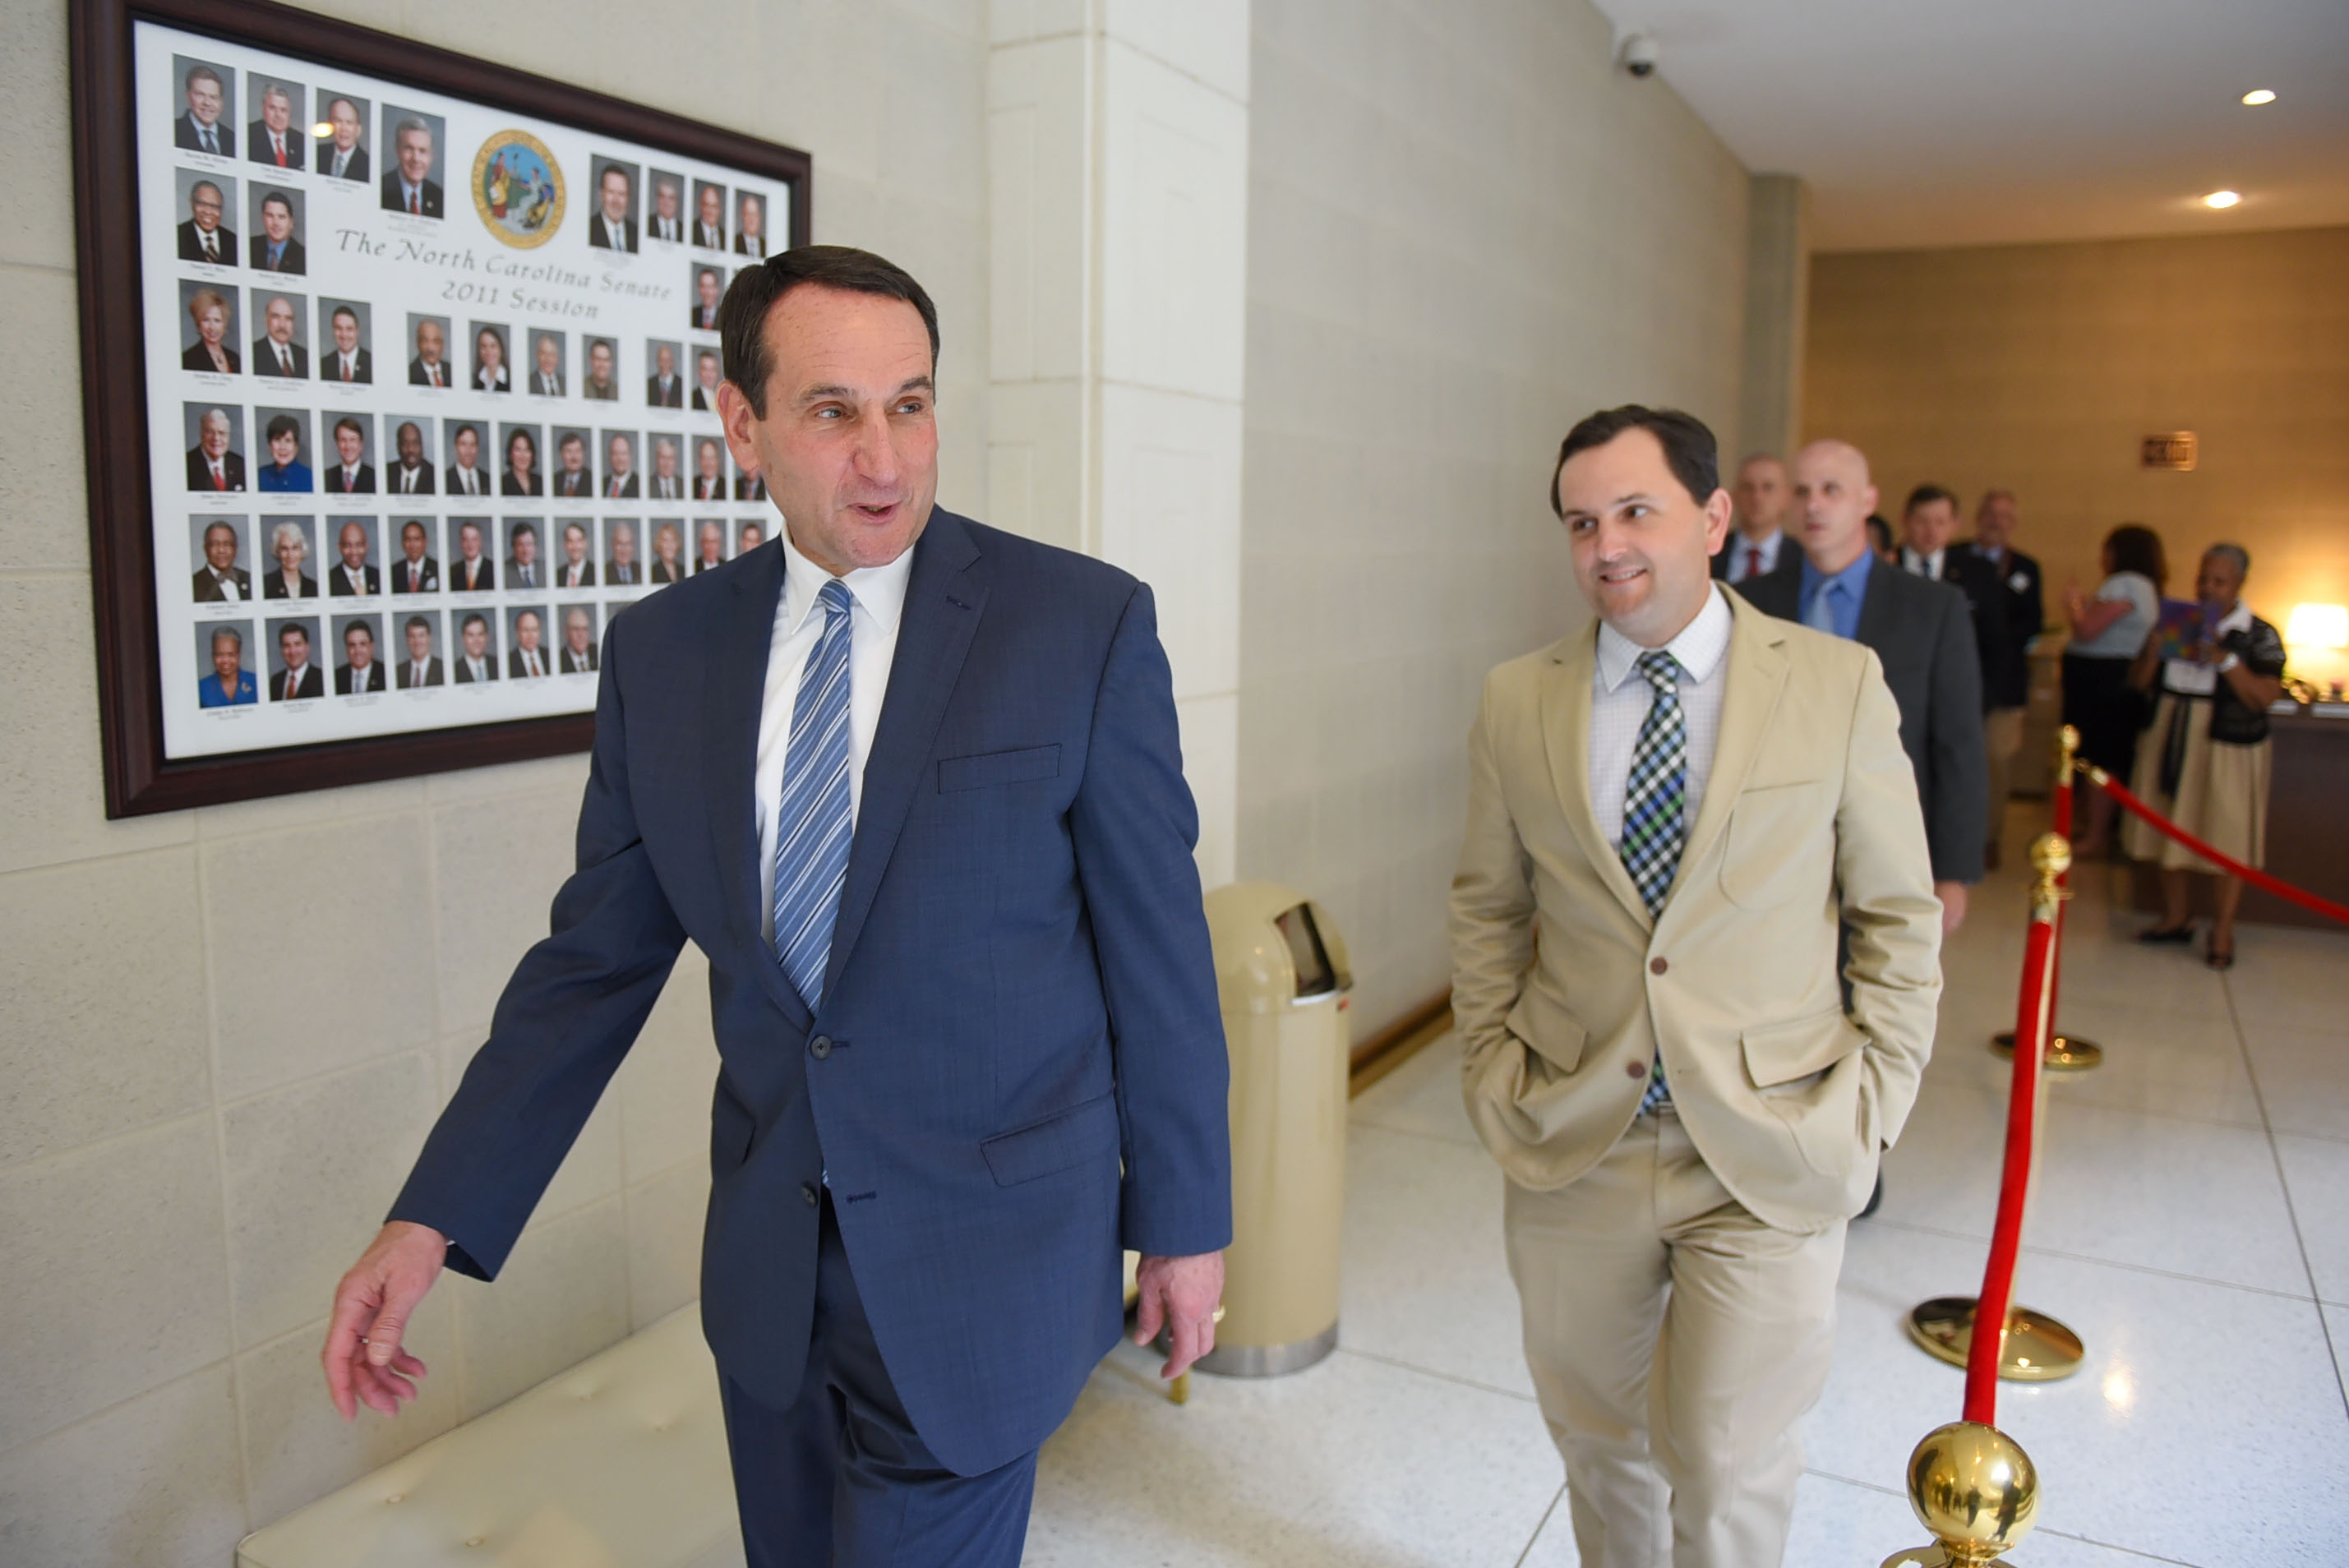 Duke men's basketball coach Mike Krzyzewski, left, walks to the Senate chamber with state Sen. Andrew C. Brock for a joint session of the North Carolina General Assembly on Tuesday, May 19, 2015 in Raleigh, N.C. The joint session passed SJR 714, honoring